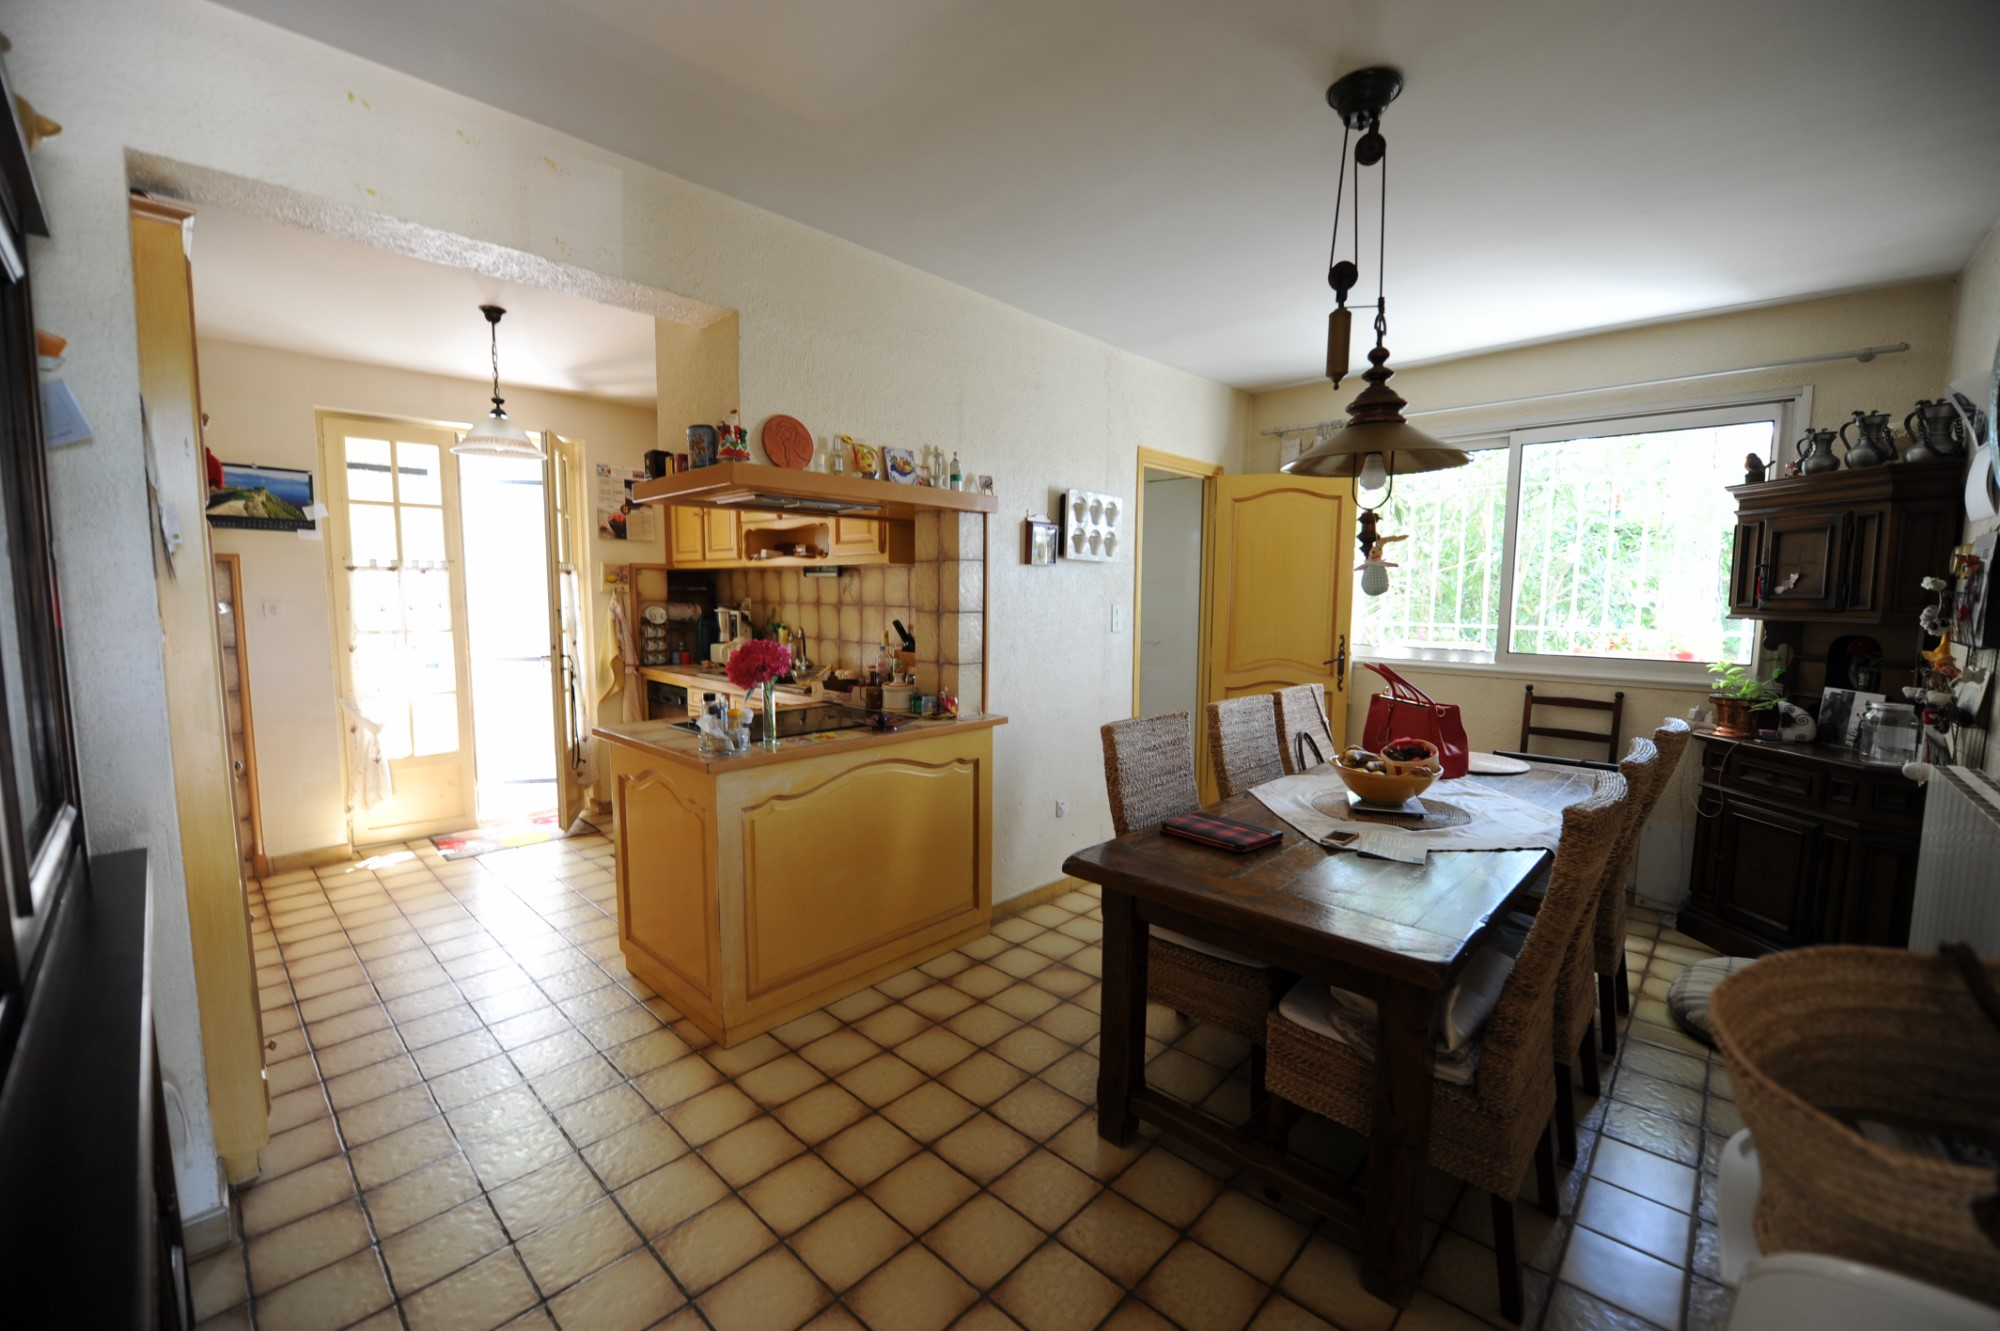 In the heart of Provence, renovated farmhouse for sale on more than 1500 sqm of land